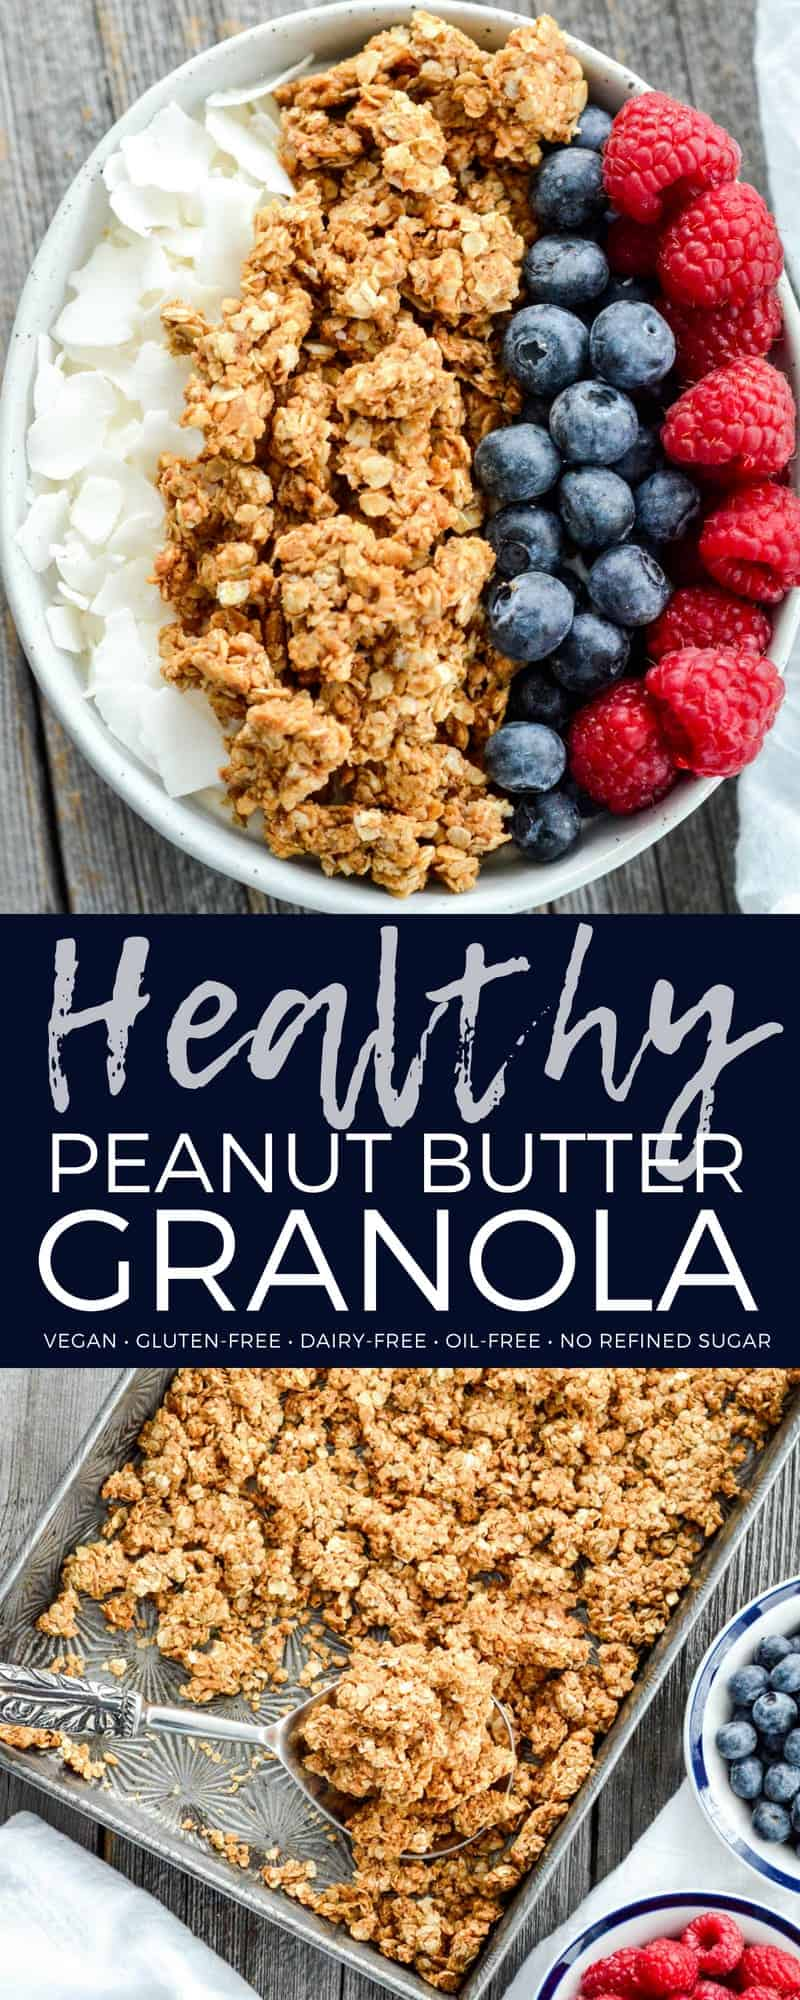 This Healthy Peanut Butter Granola is the perfect make-ahead breakfast recipe! With only 6 ingredients it's so easy to make (ready in less than 30 minutes)! Gluten-free, dairy-free, refined sugar free, oil free and vegan! #healthygranola #peanutbutter #breakfast #recipe #granola #glutenfree #vegan #dairyfree